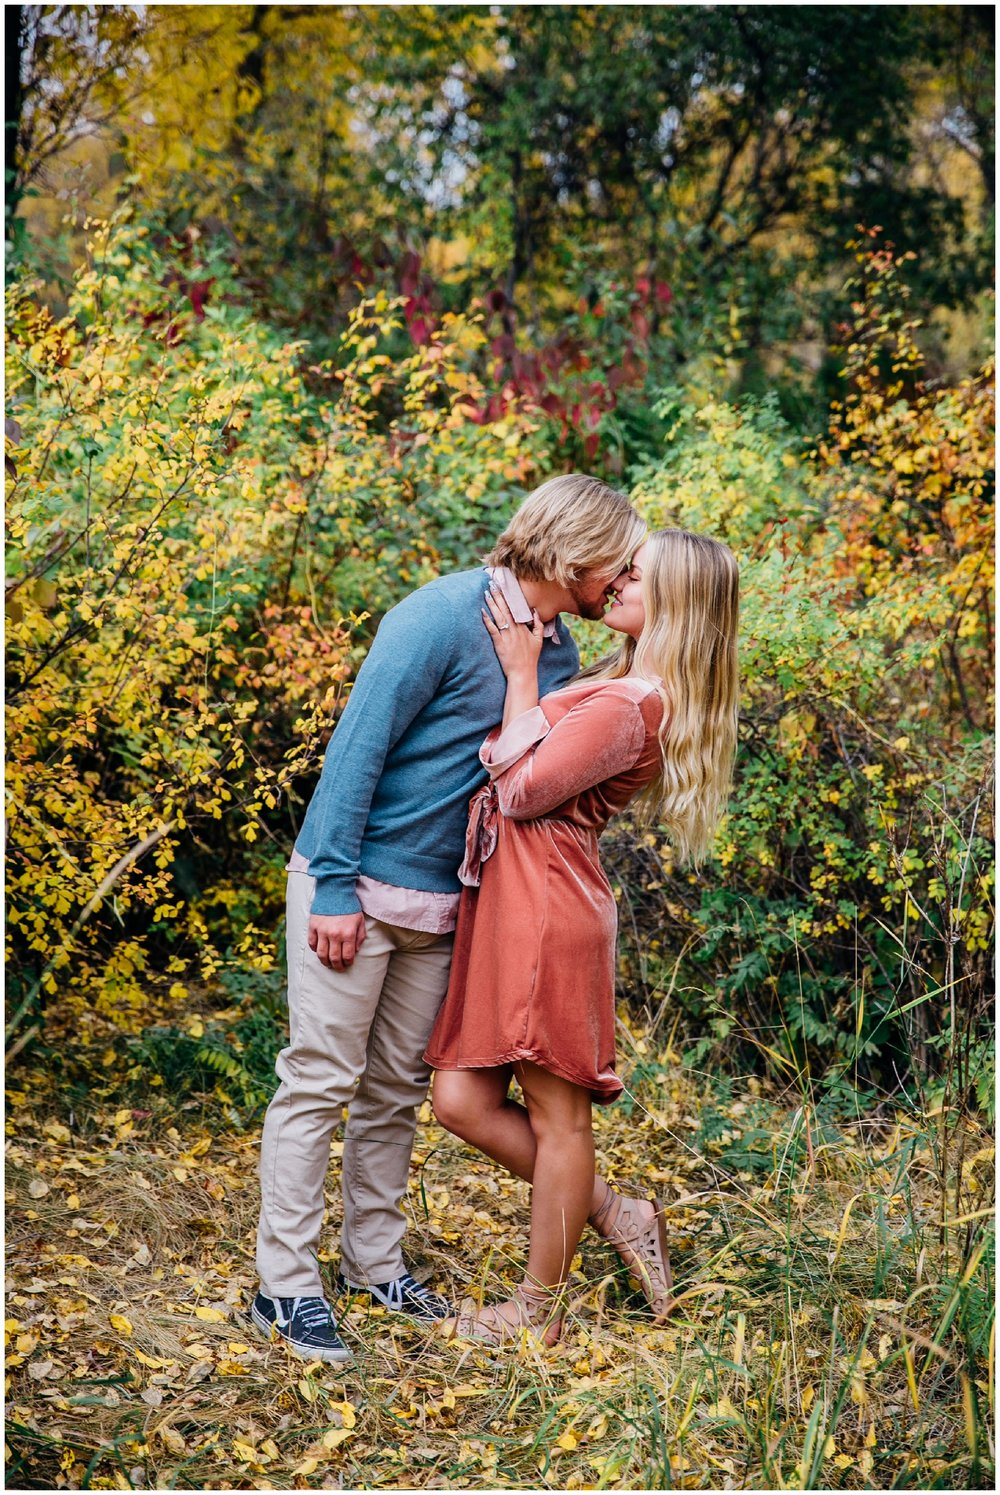 idaho-adventure-wedding-photographer-idaho-falls-rigby-rexburg-engagements_1622.jpg